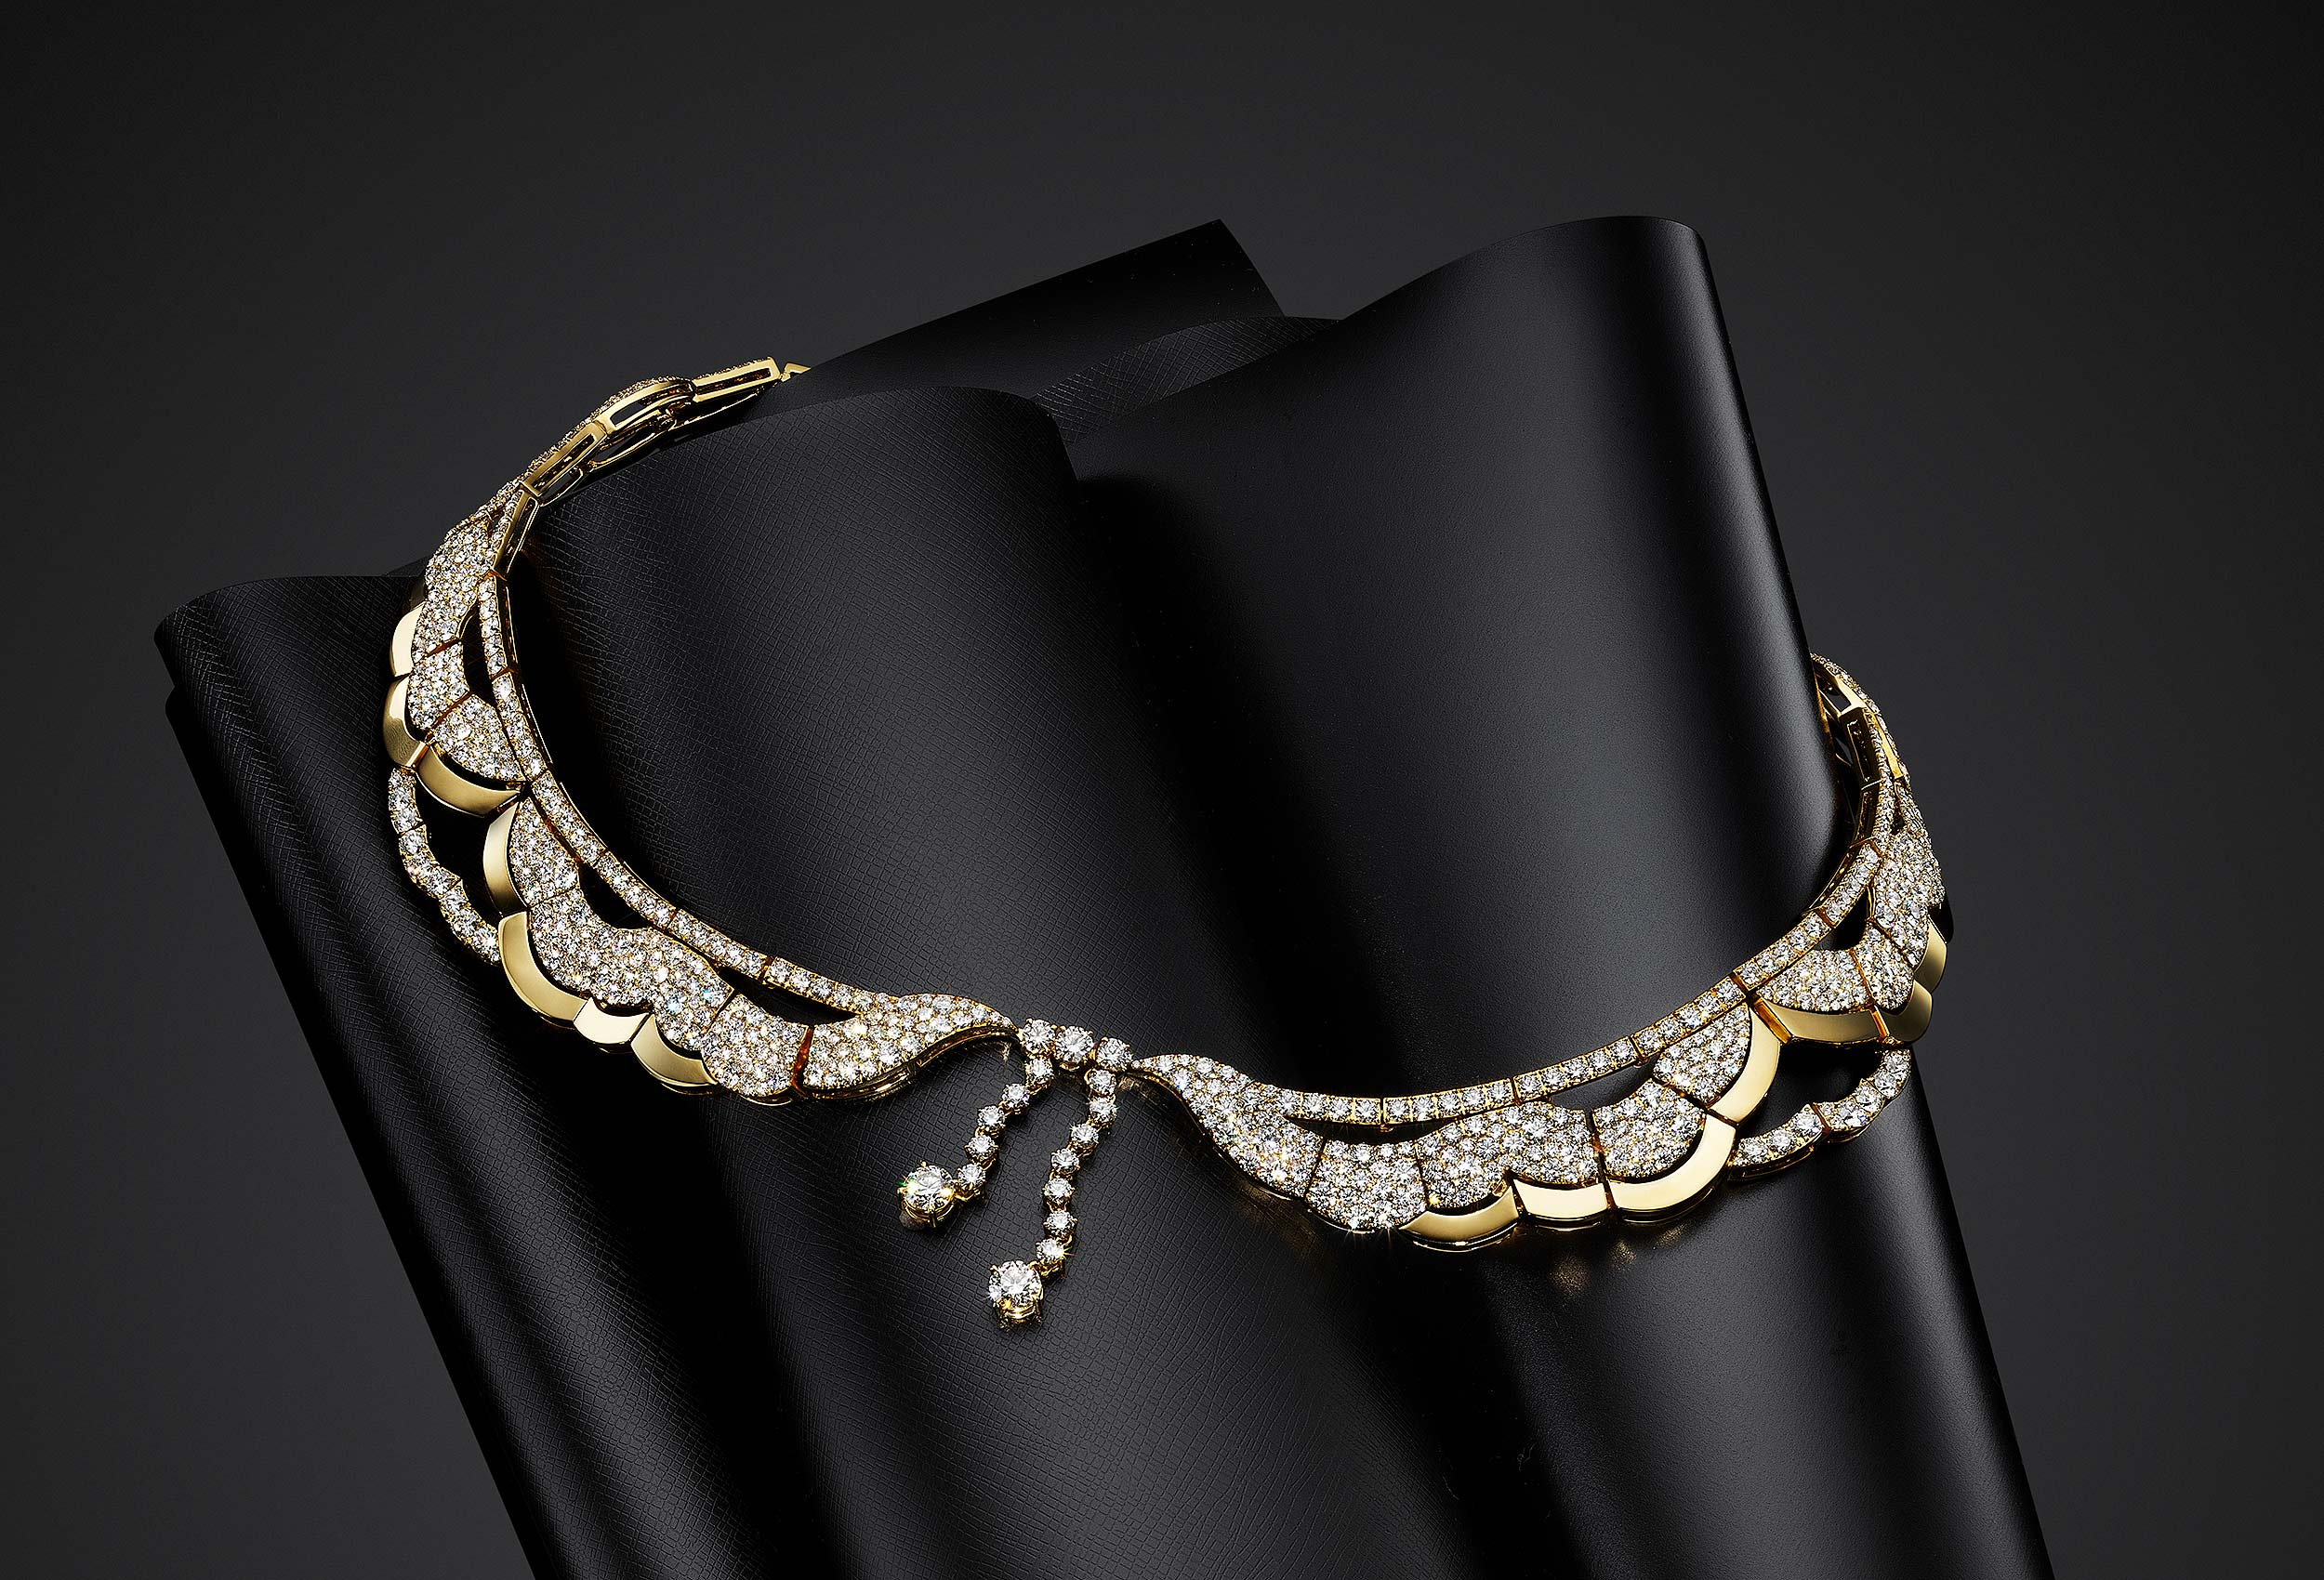 Gold-Necklace-on-Black